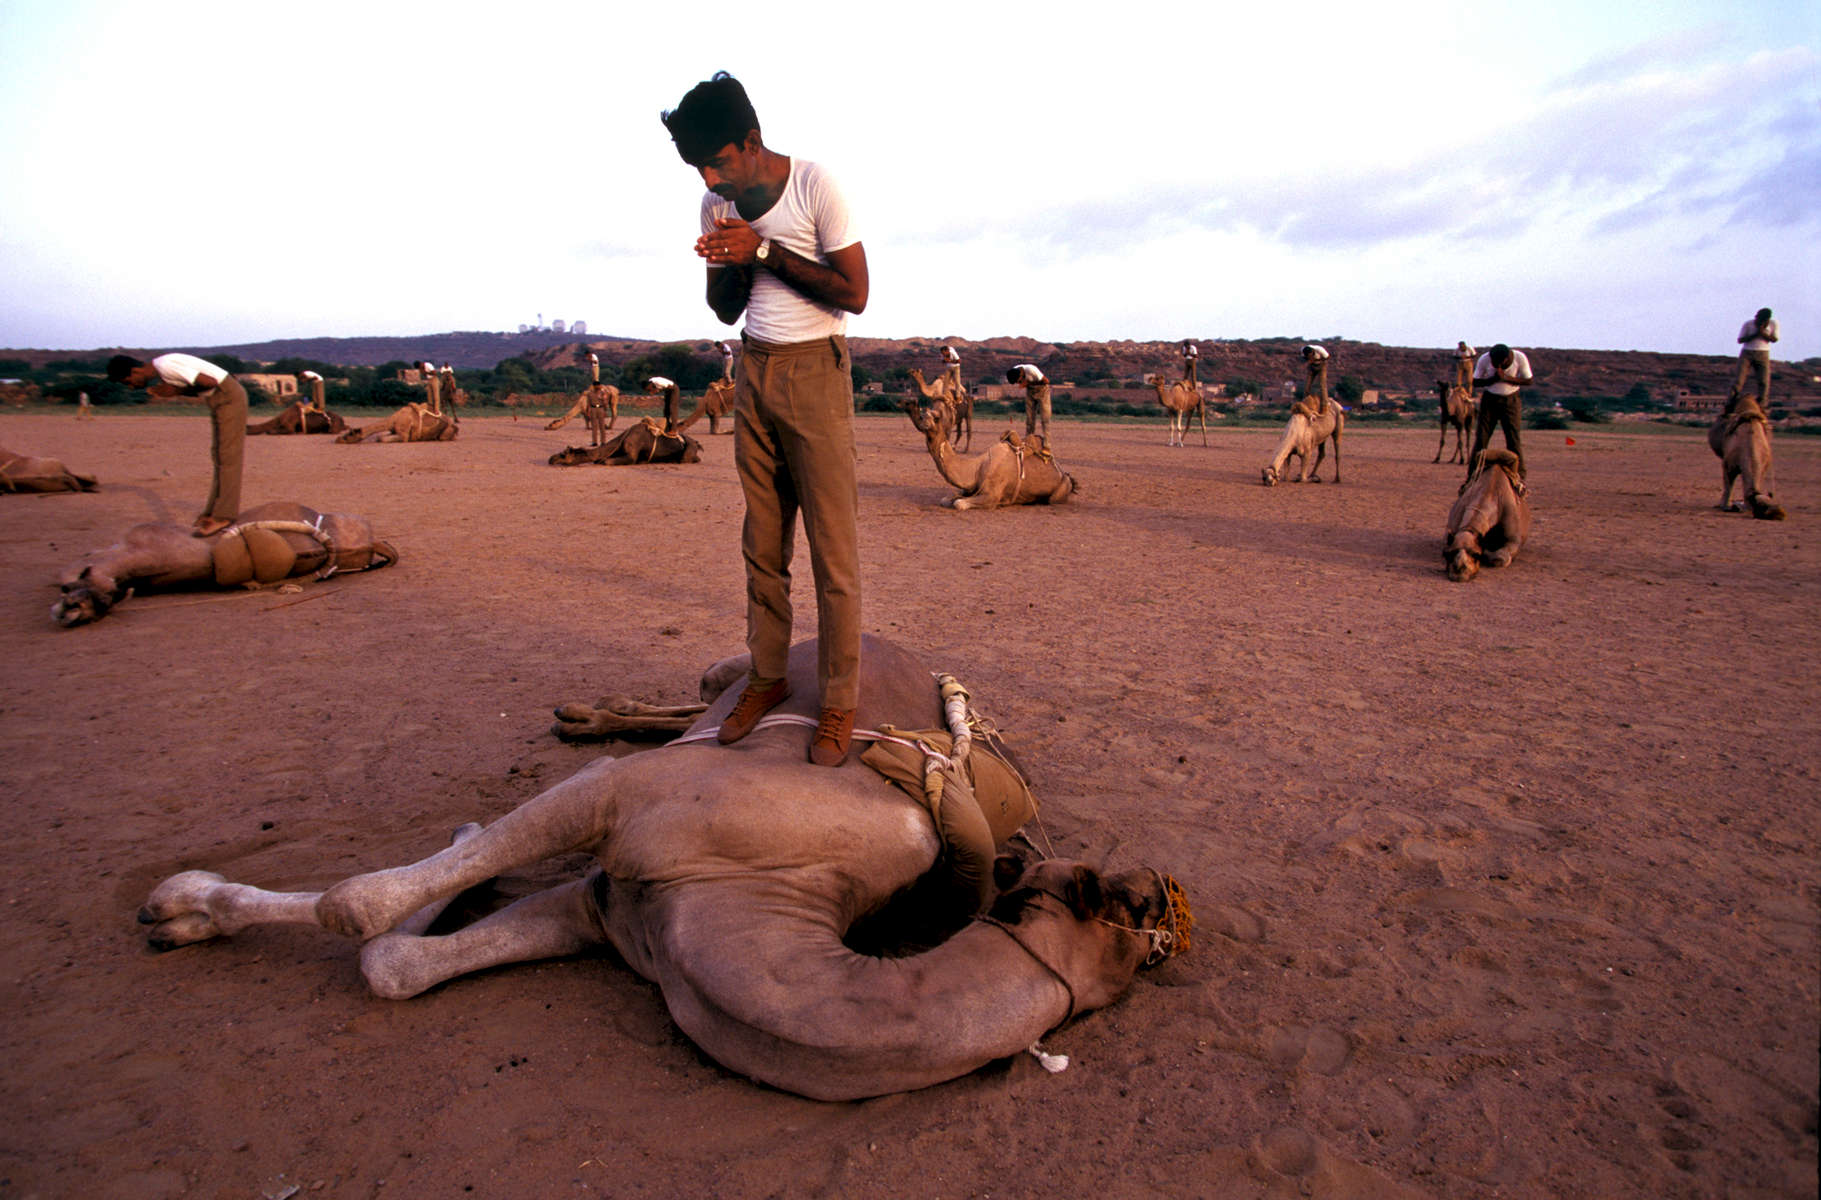 India's Border Security Force regional headquarters at Jodhpur's training centre. Special camel training for ceremonial purposes takes 2 years to train a rider and 3 years to train a camel.1998